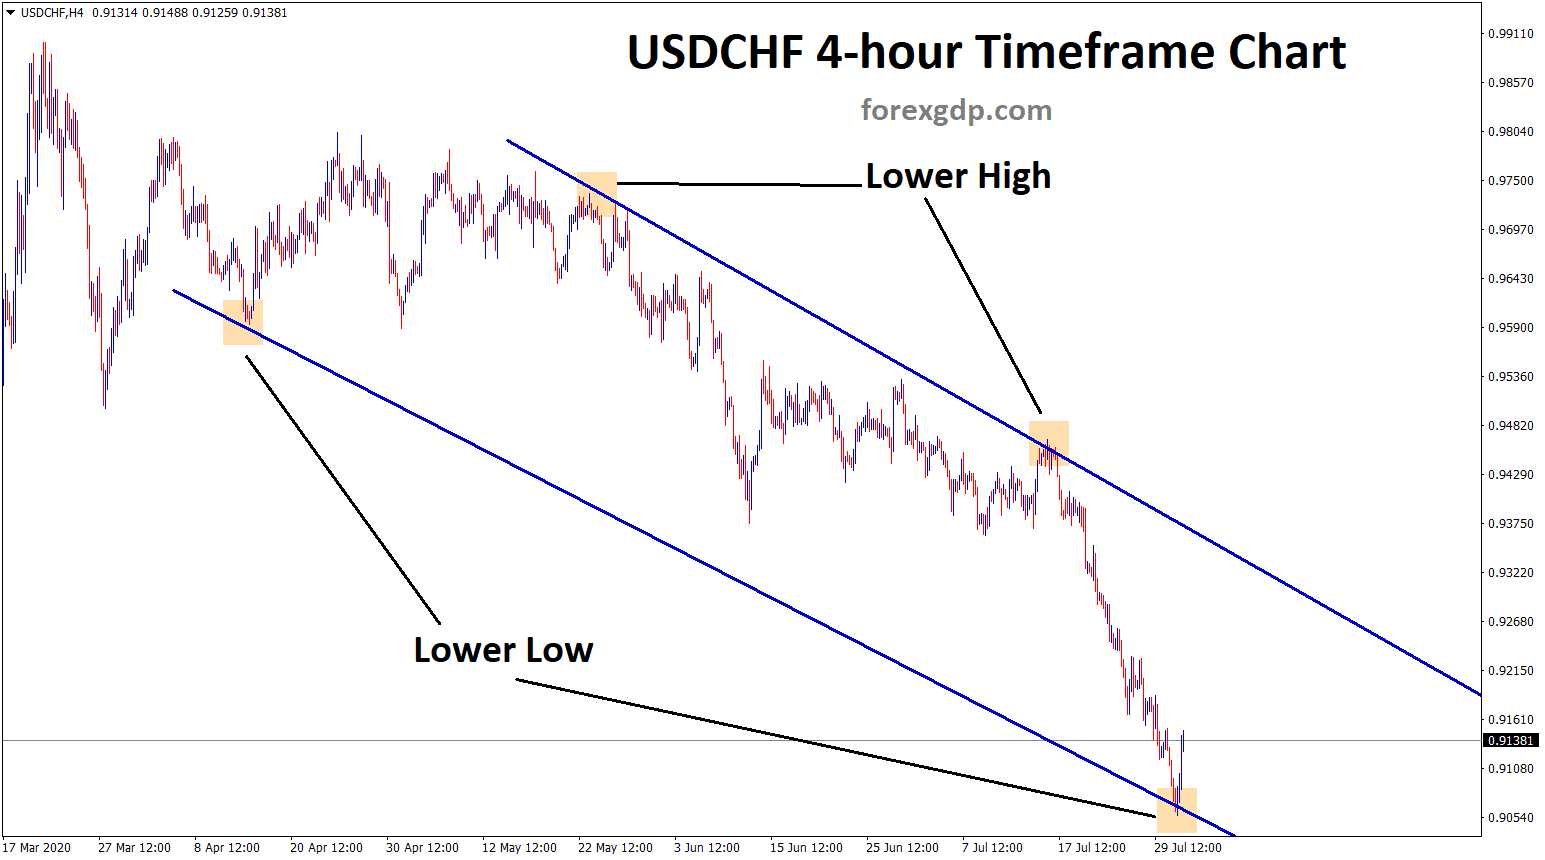 USDCHF lower high lower low in H4 TF chart